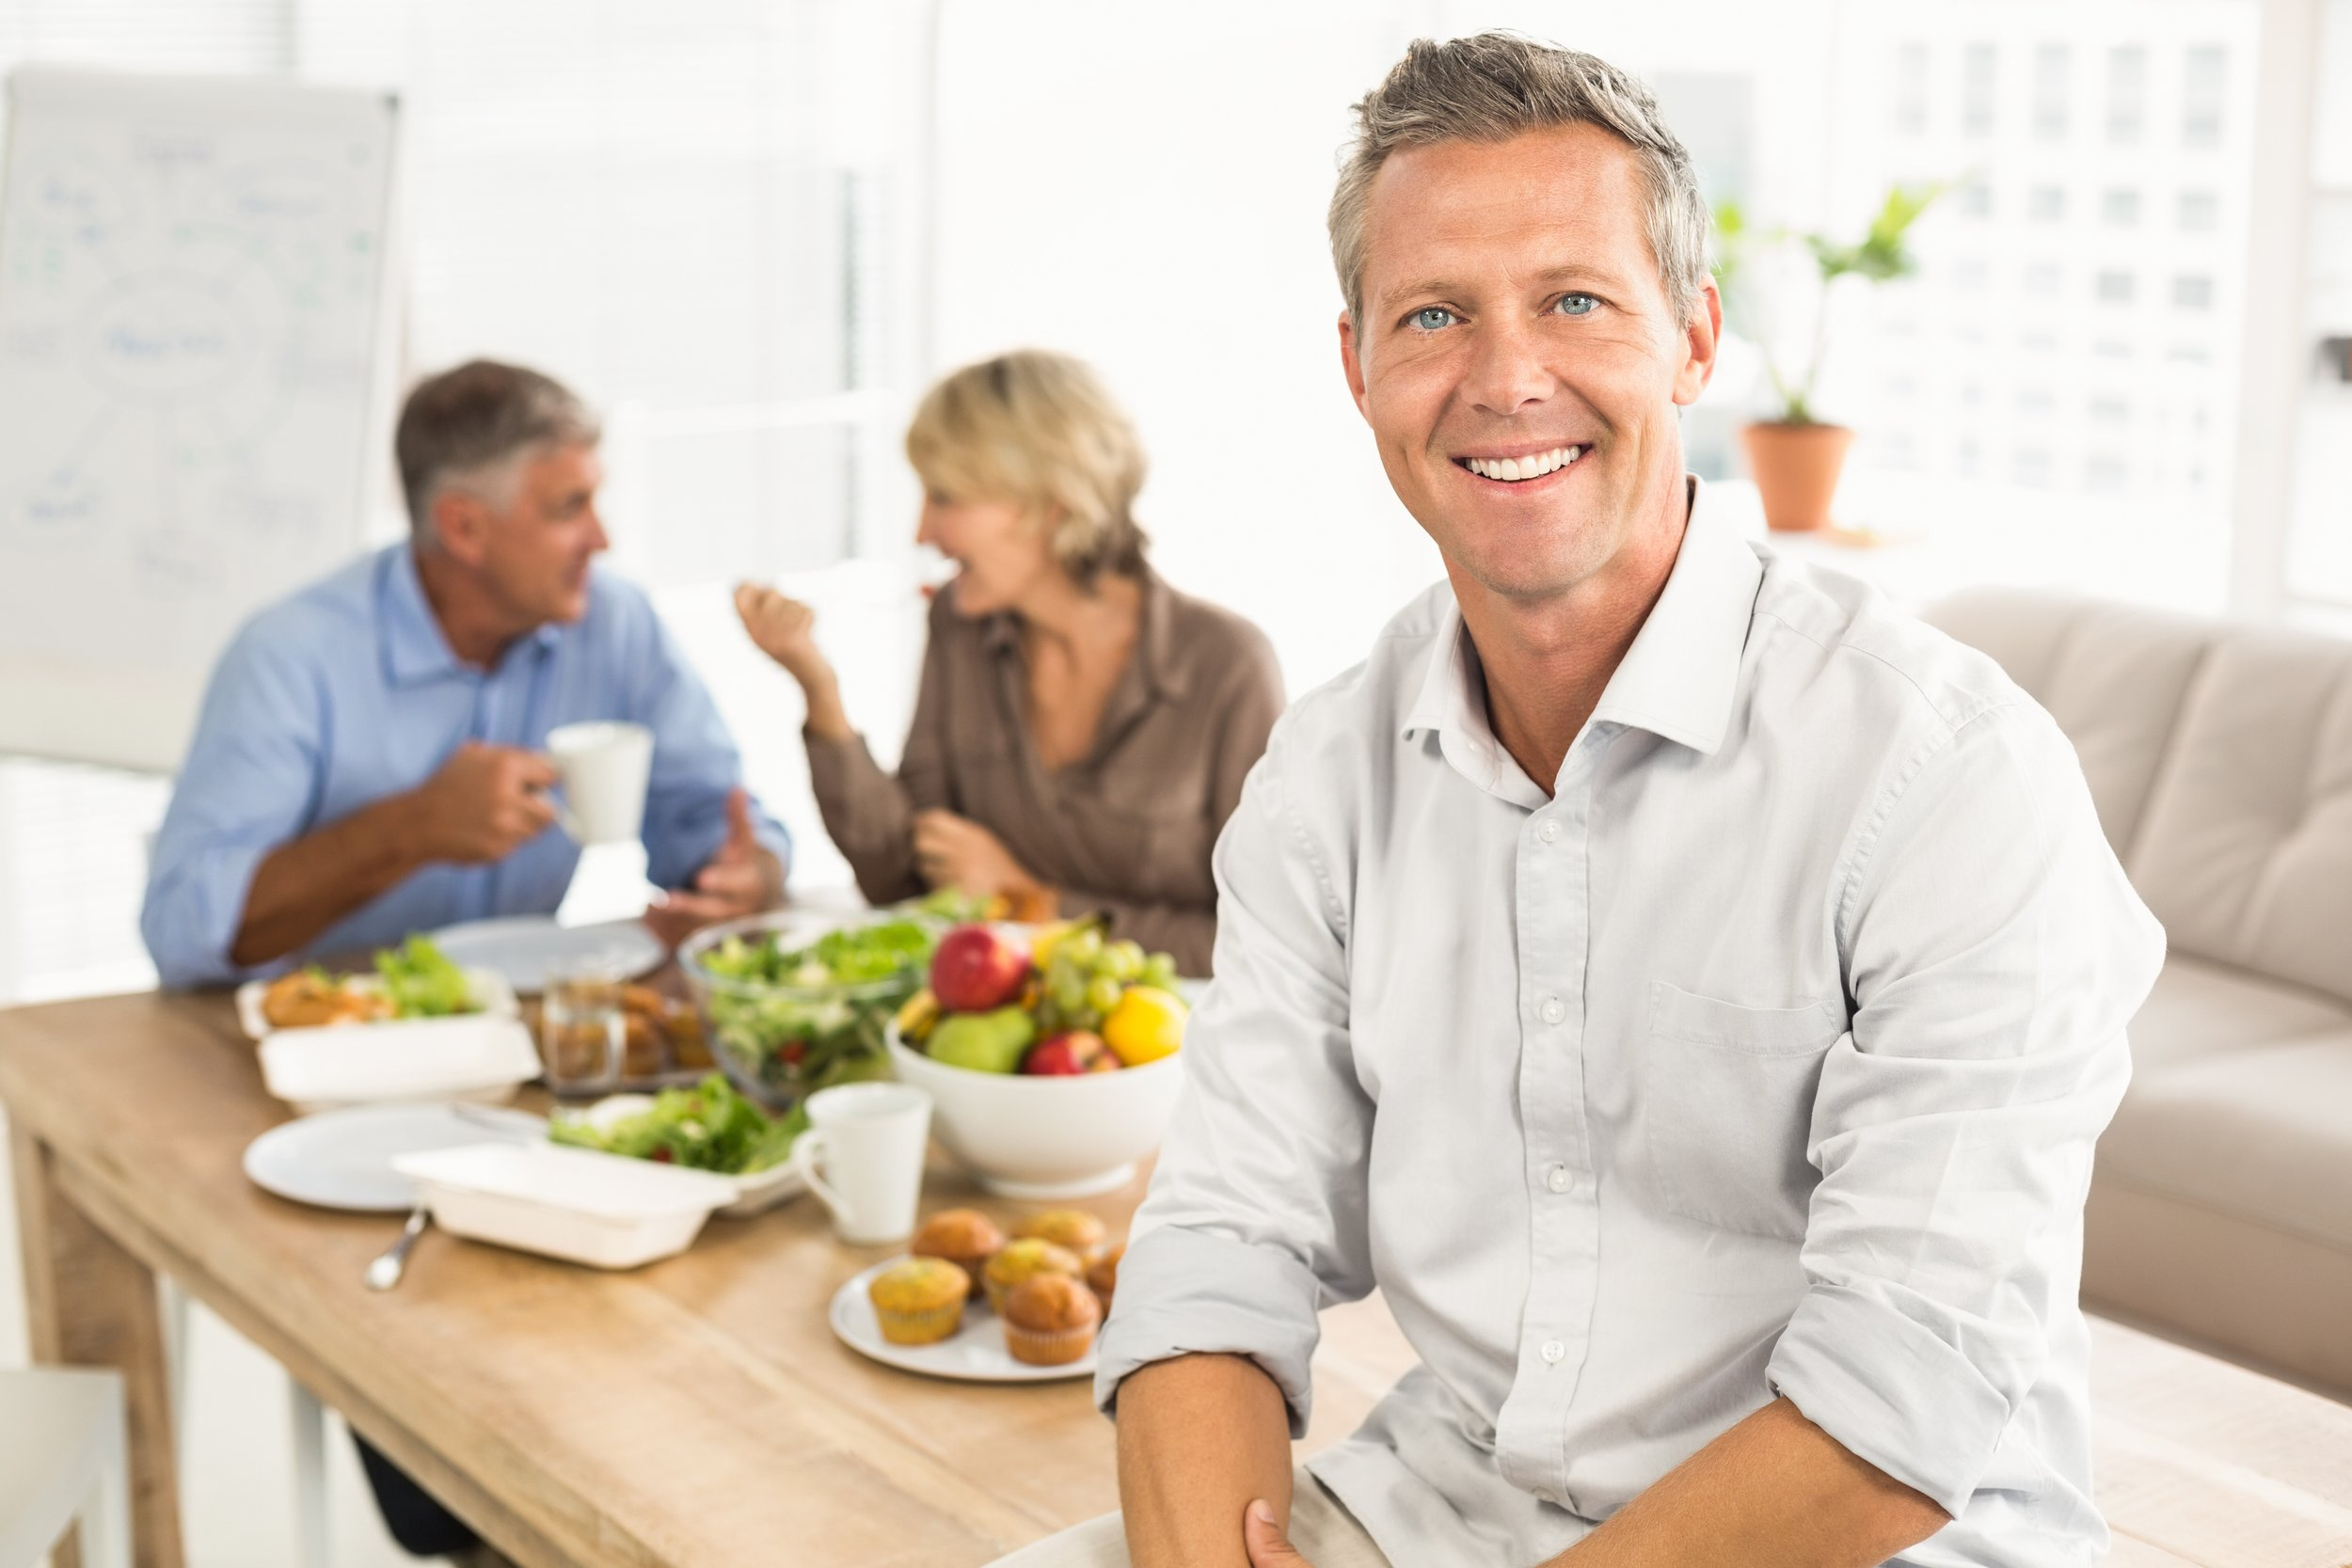 Smiling casual businessman sitting on table at lunch